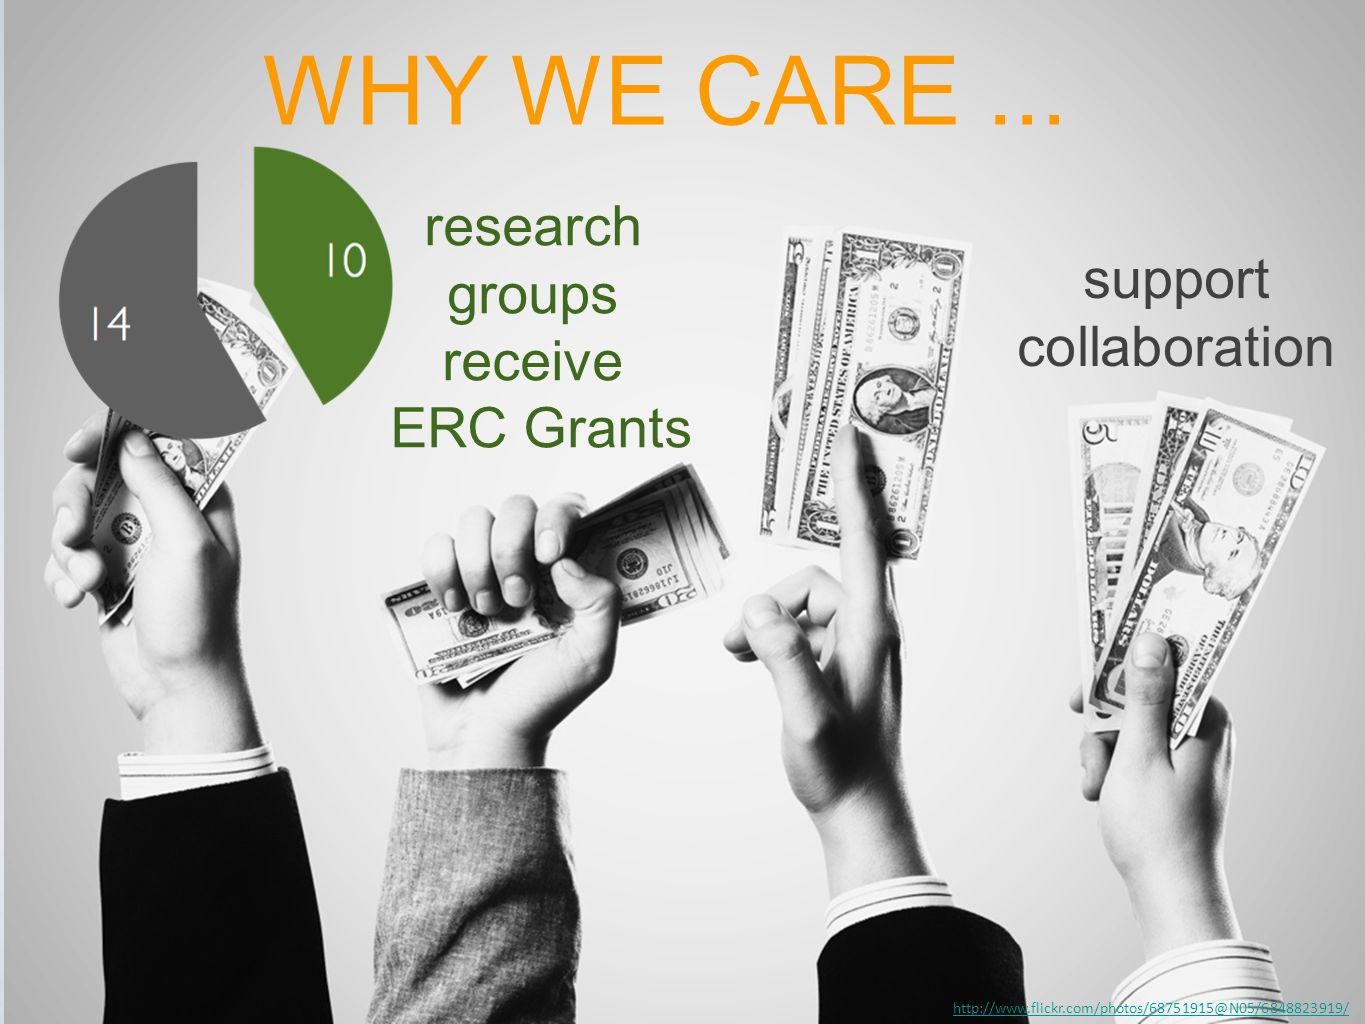 WHY WE CARE ... research groups receive ERC Grants